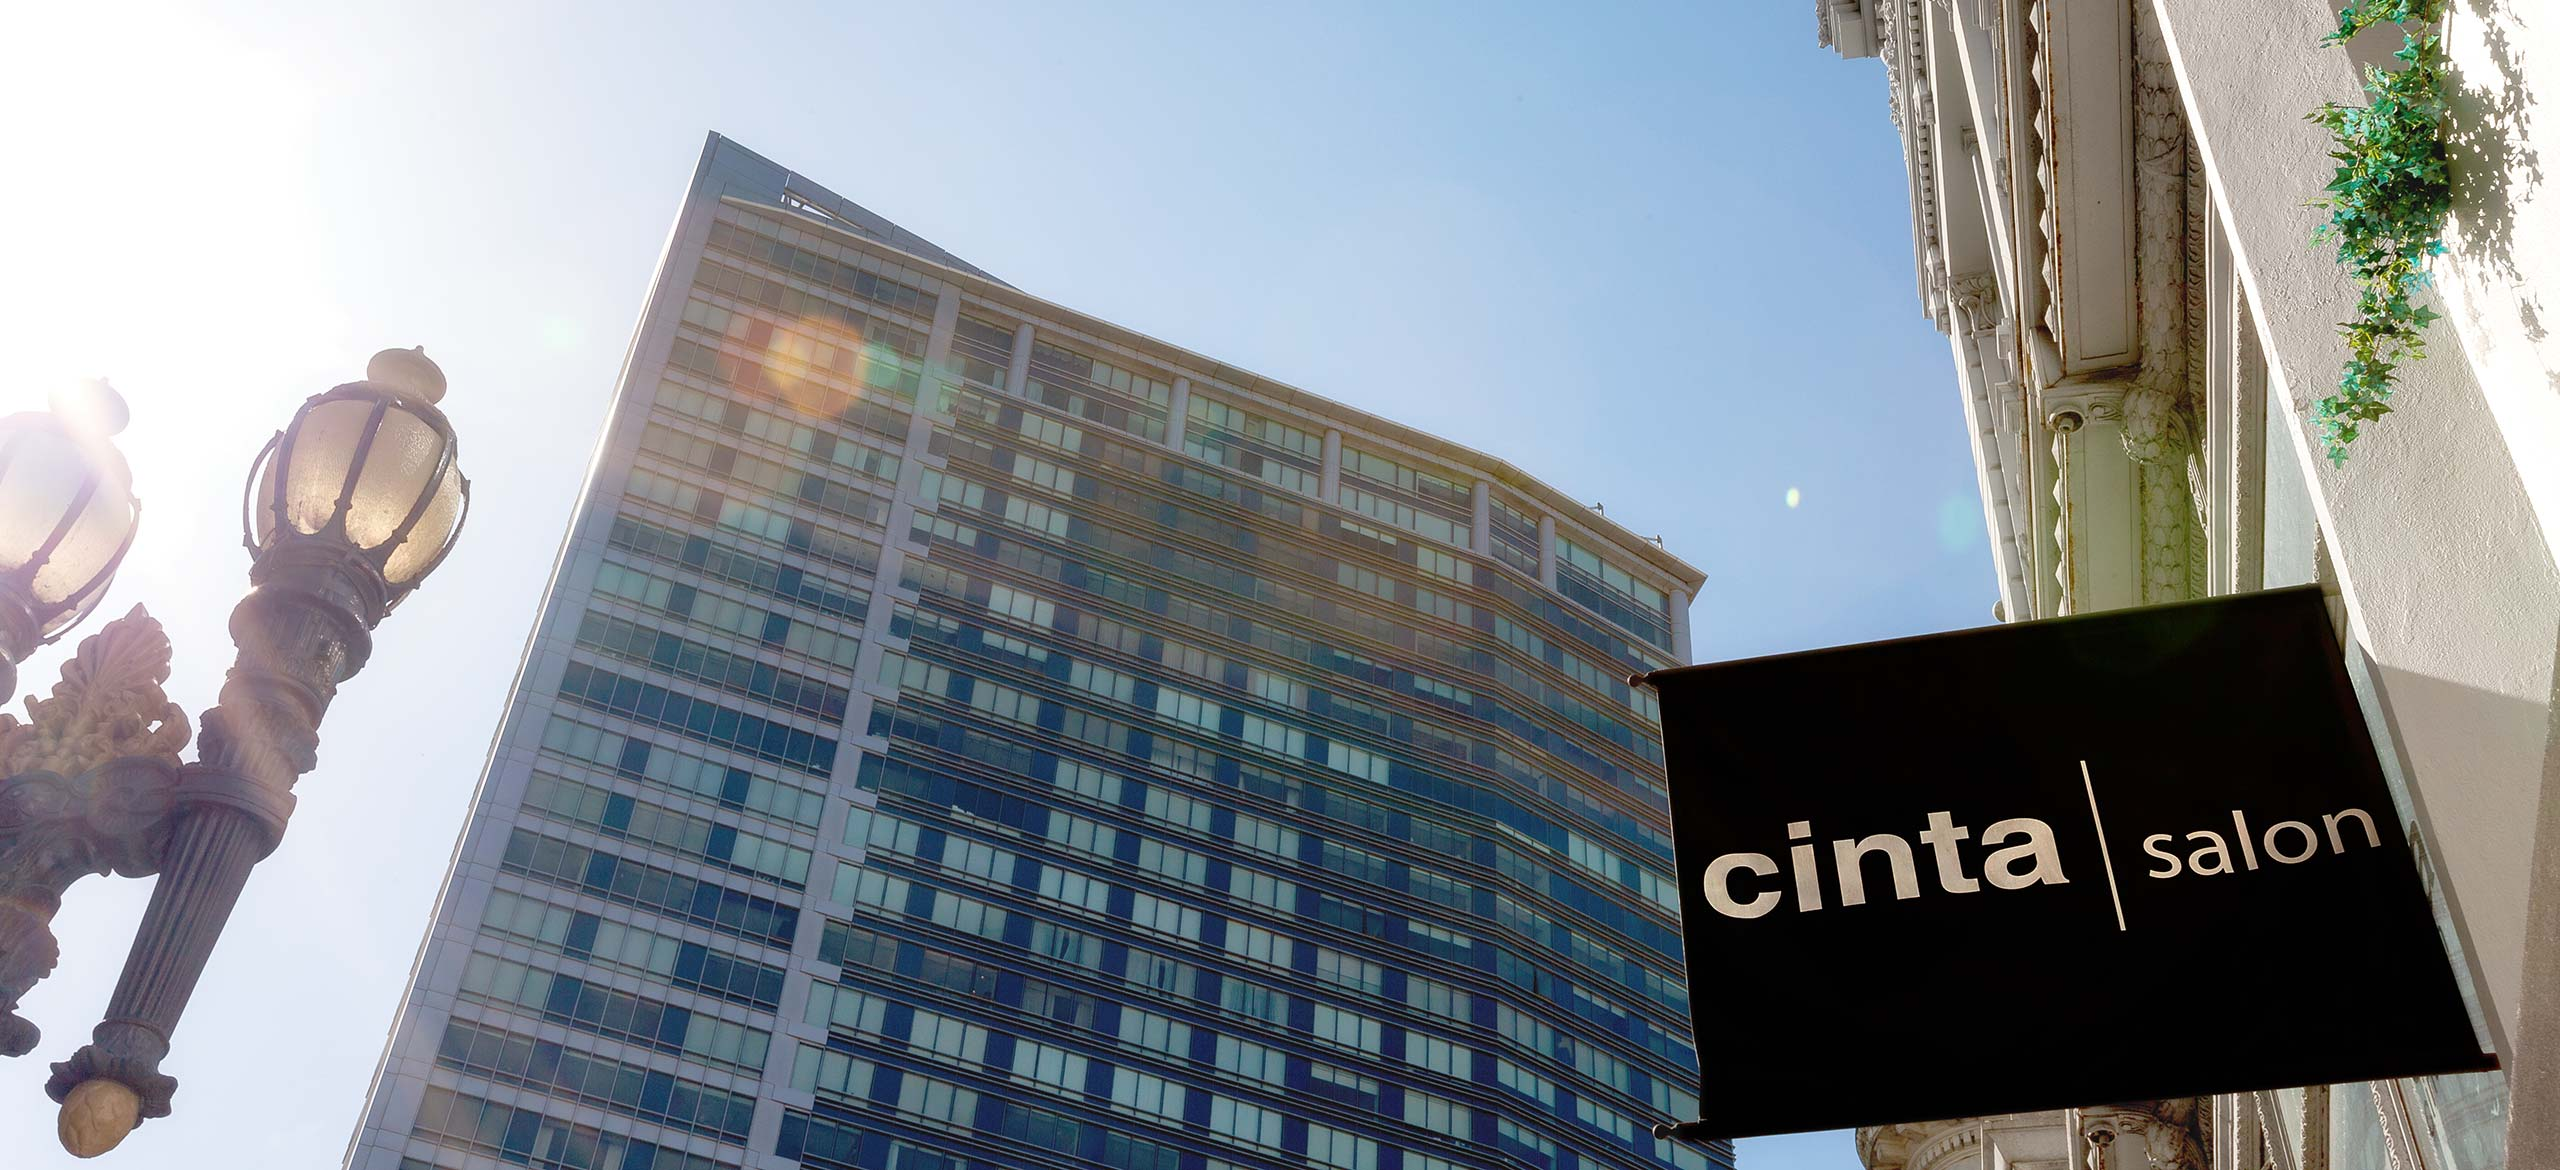 Cinta Salon - Exterior lamp and sign